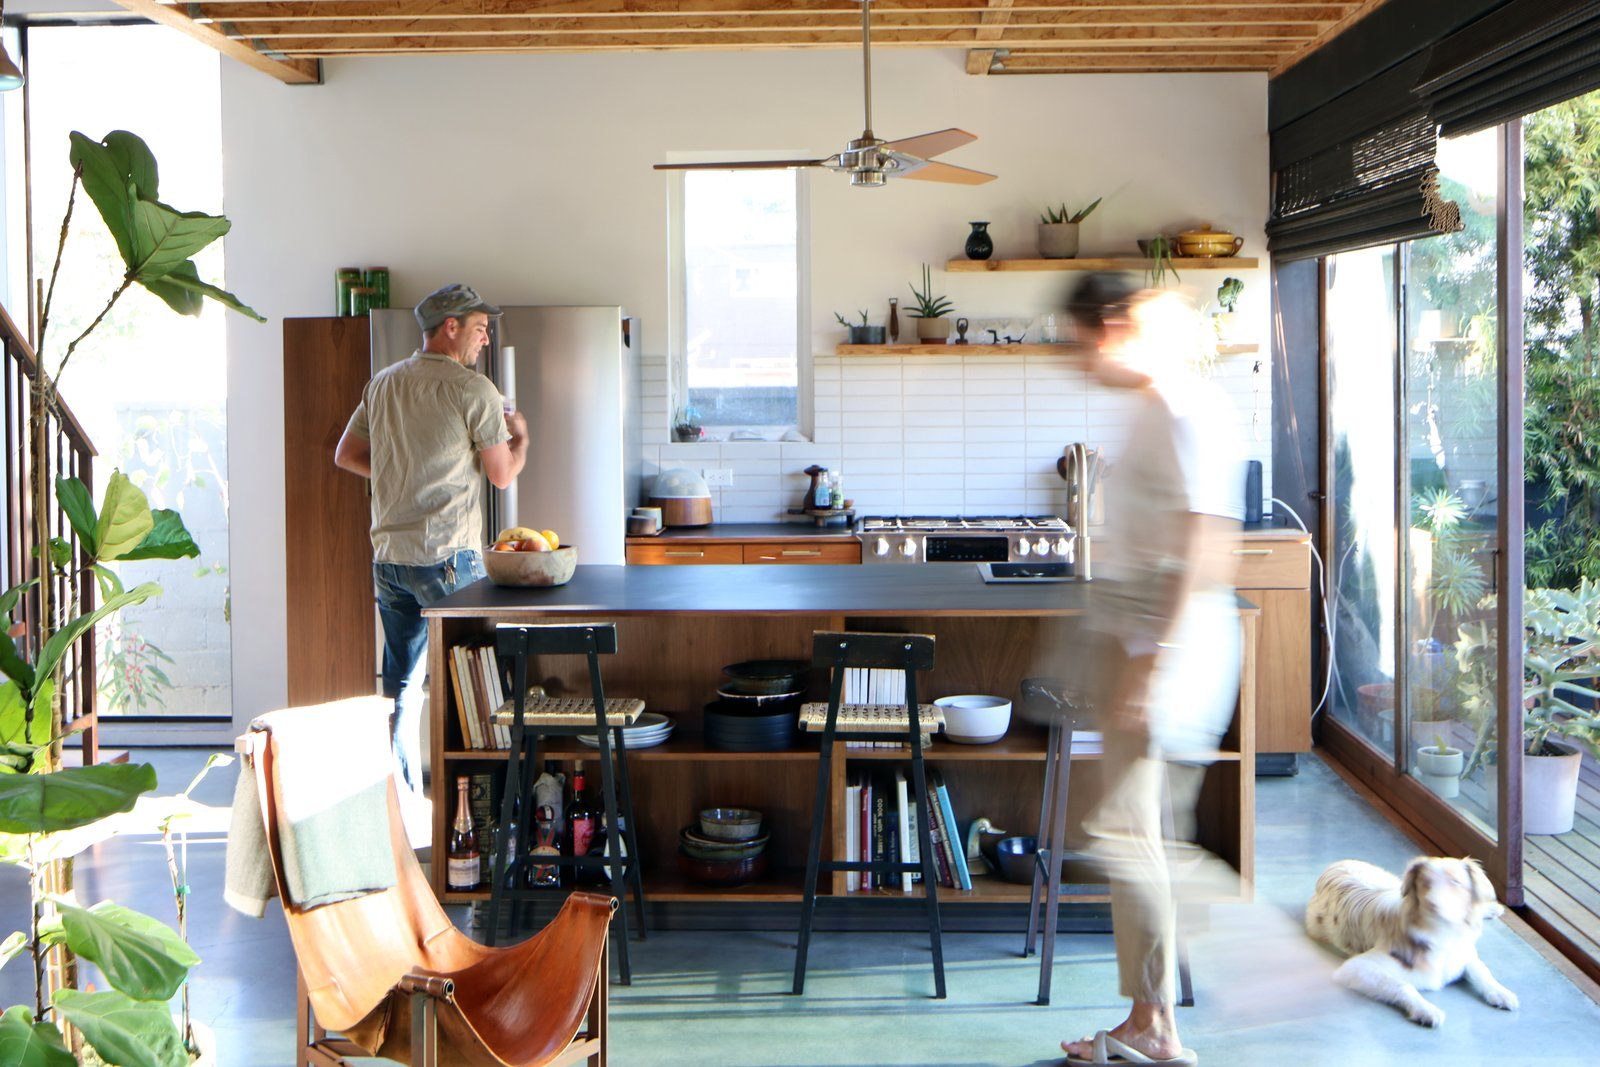 Vinokaur-Deters Residence by Weather Projects Kitchen